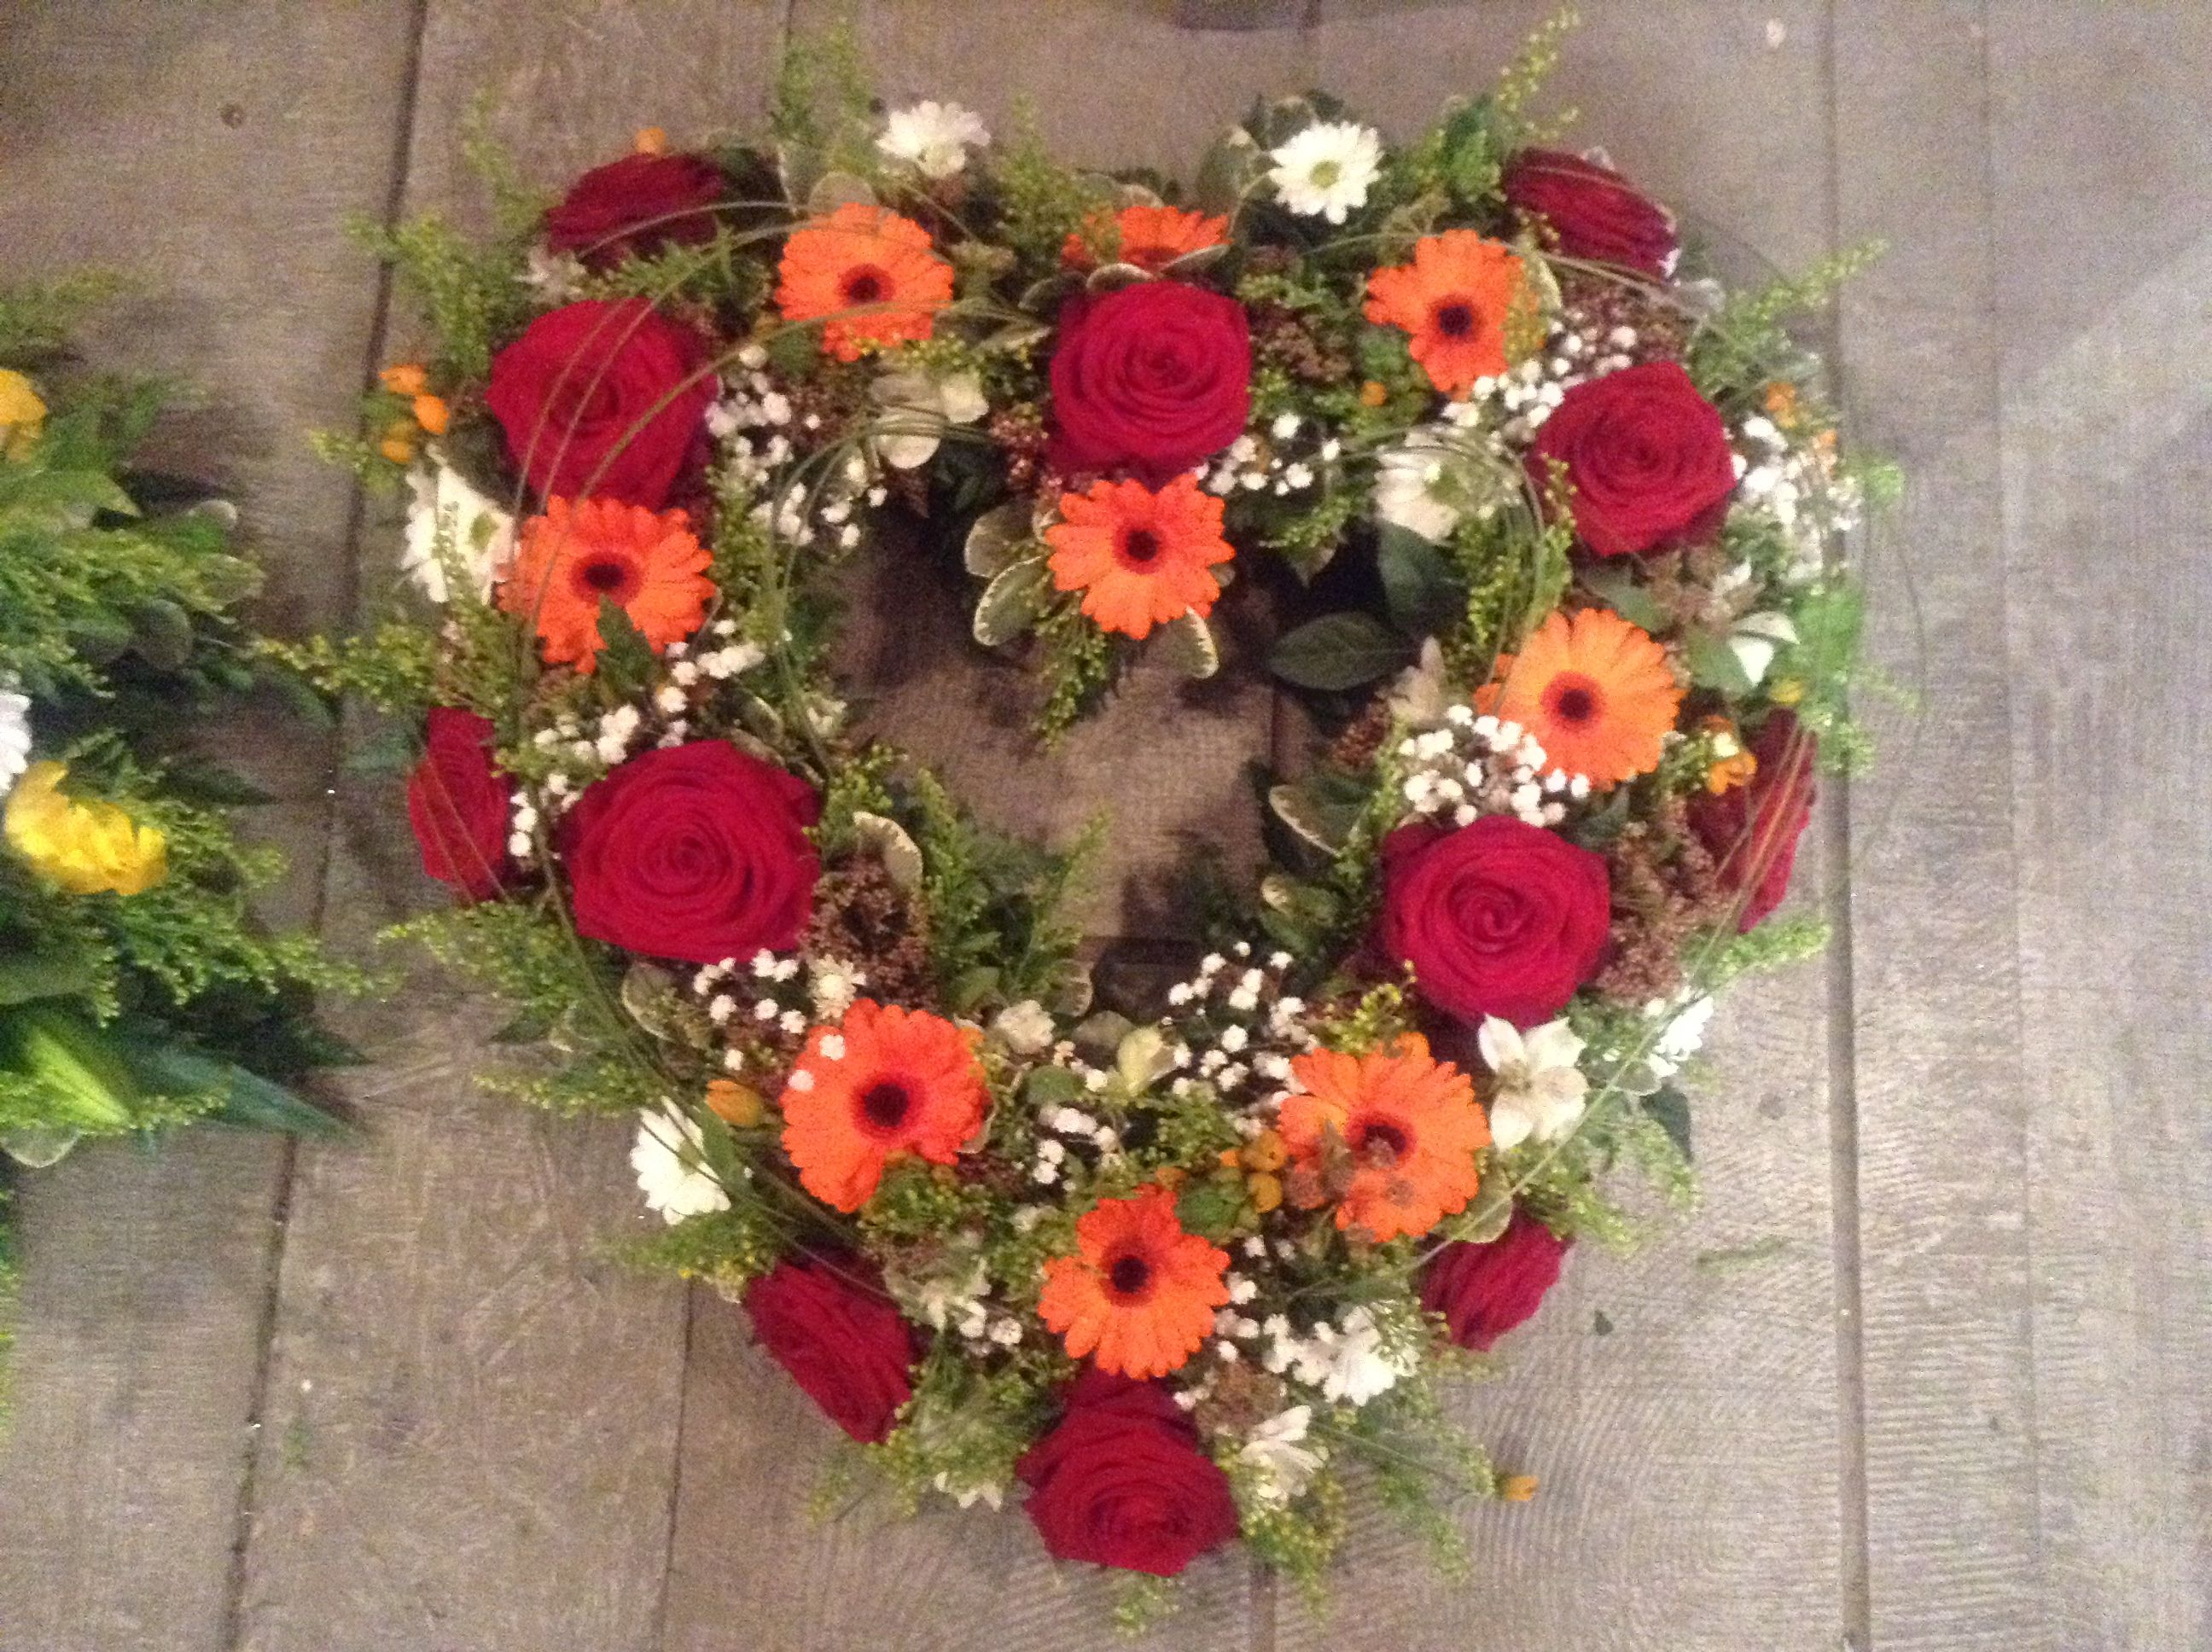 Funeral flowers love heart funeral tribute deep red roses bright funeral flowers love heart funeral tribute deep red roses bright orange gerbera open izmirmasajfo Image collections